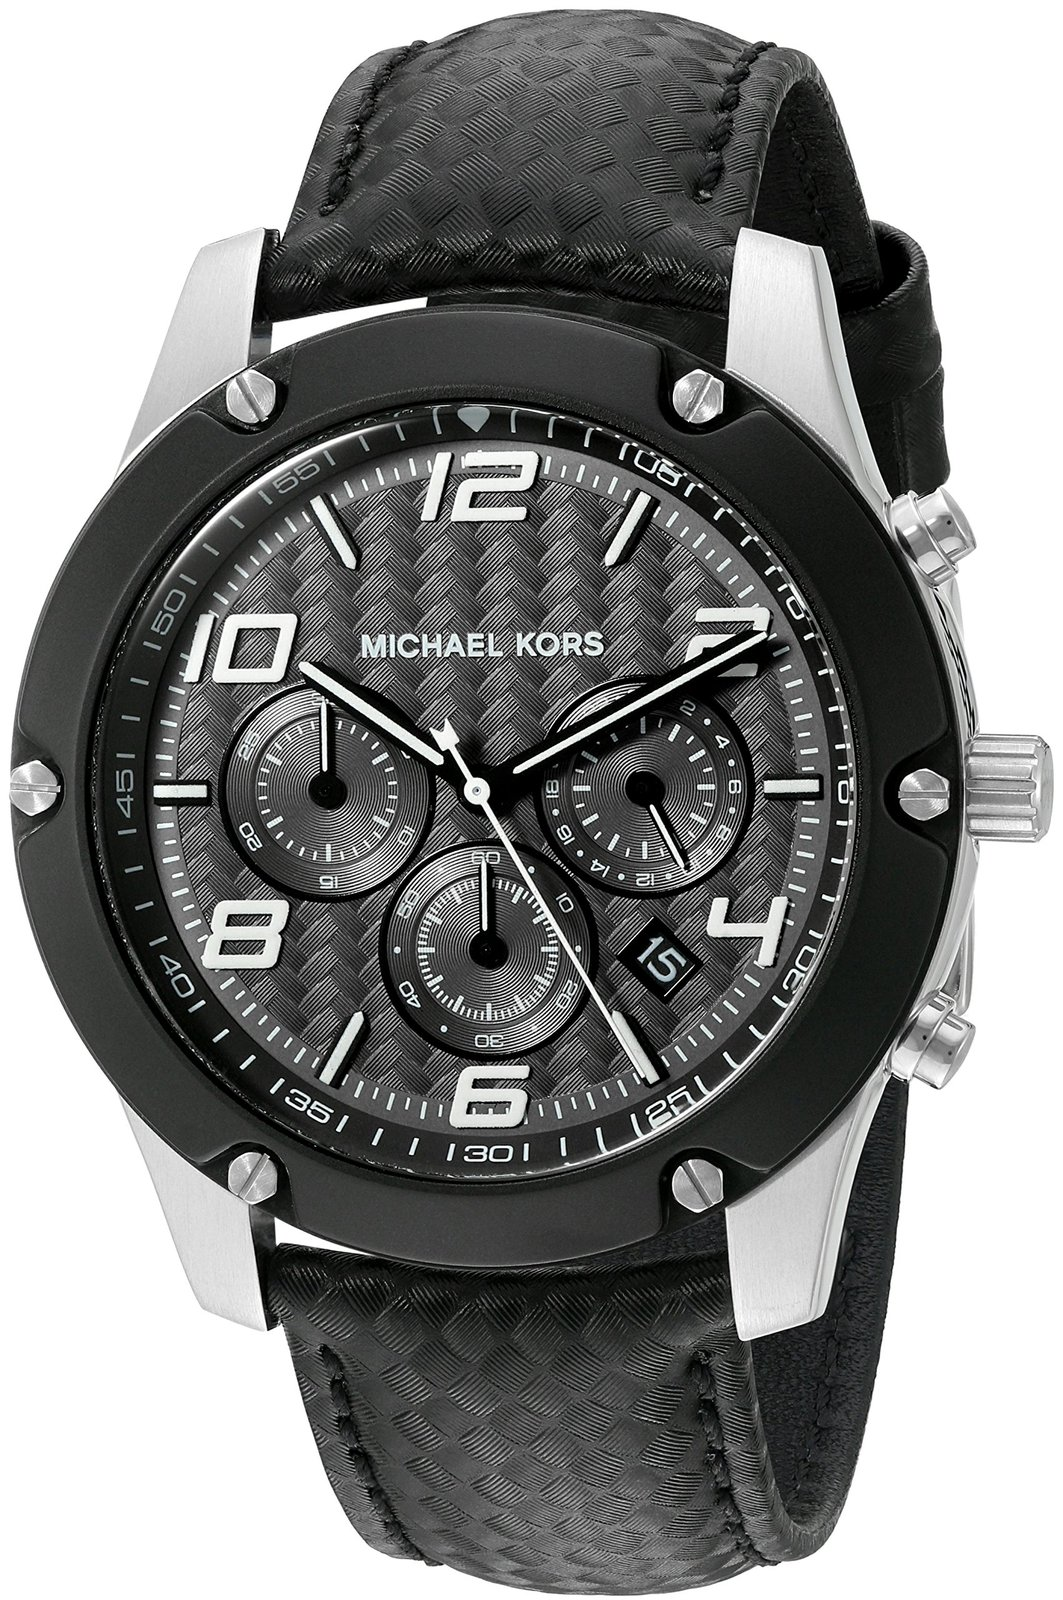 7e0bf798ab58 Michael Kors Men s Caine Silver-Tone Watch and 50 similar items. 918truf8z1l